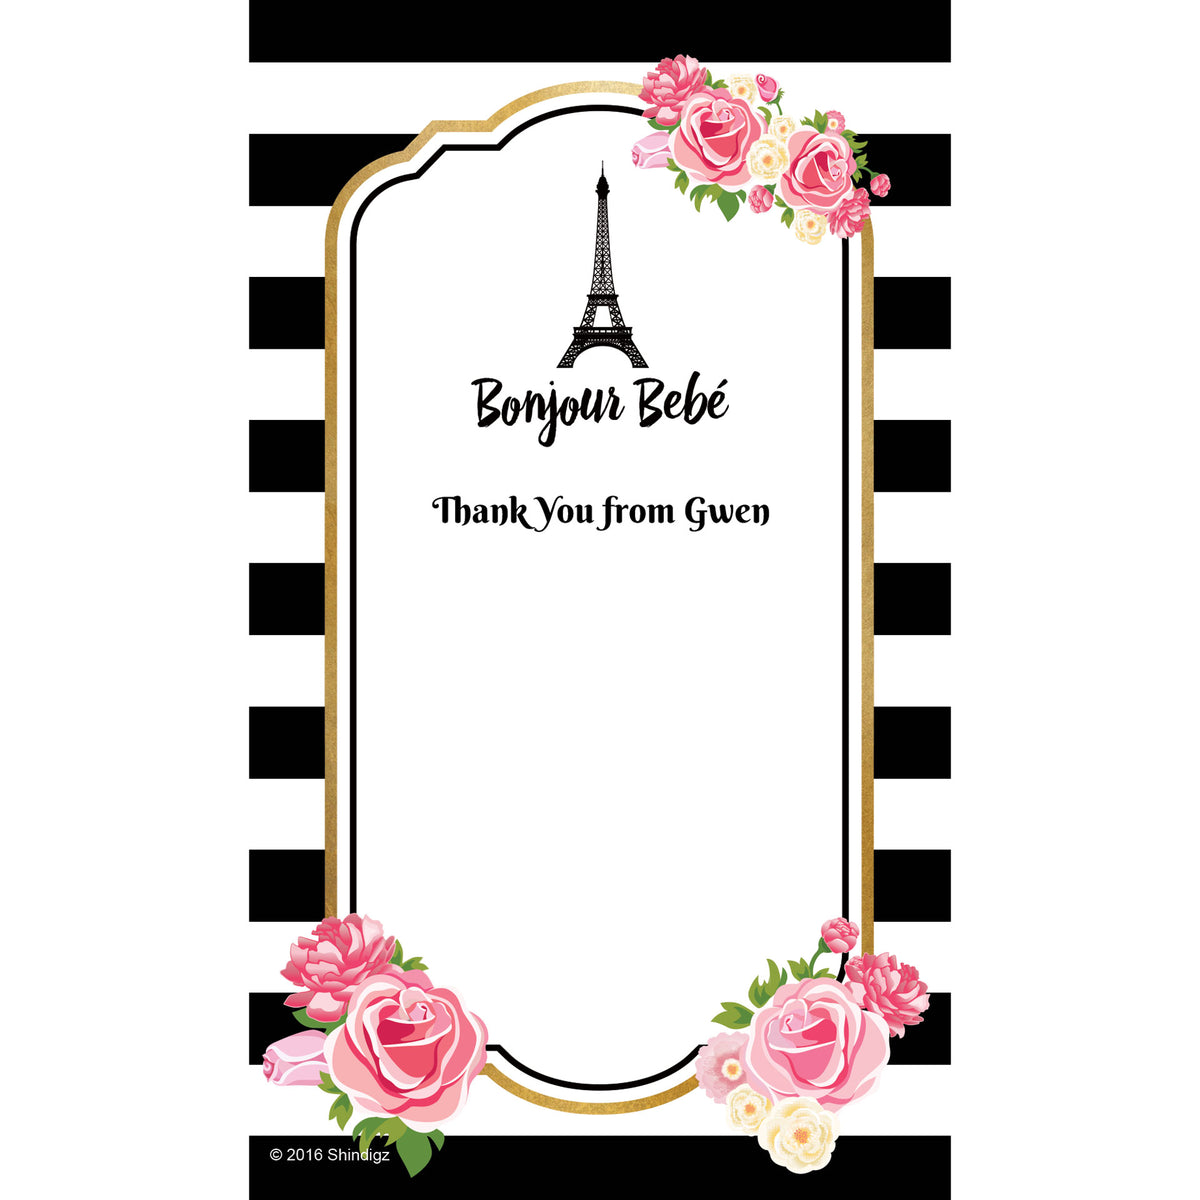 Bonjour Bebe Personalized Thank You Notes